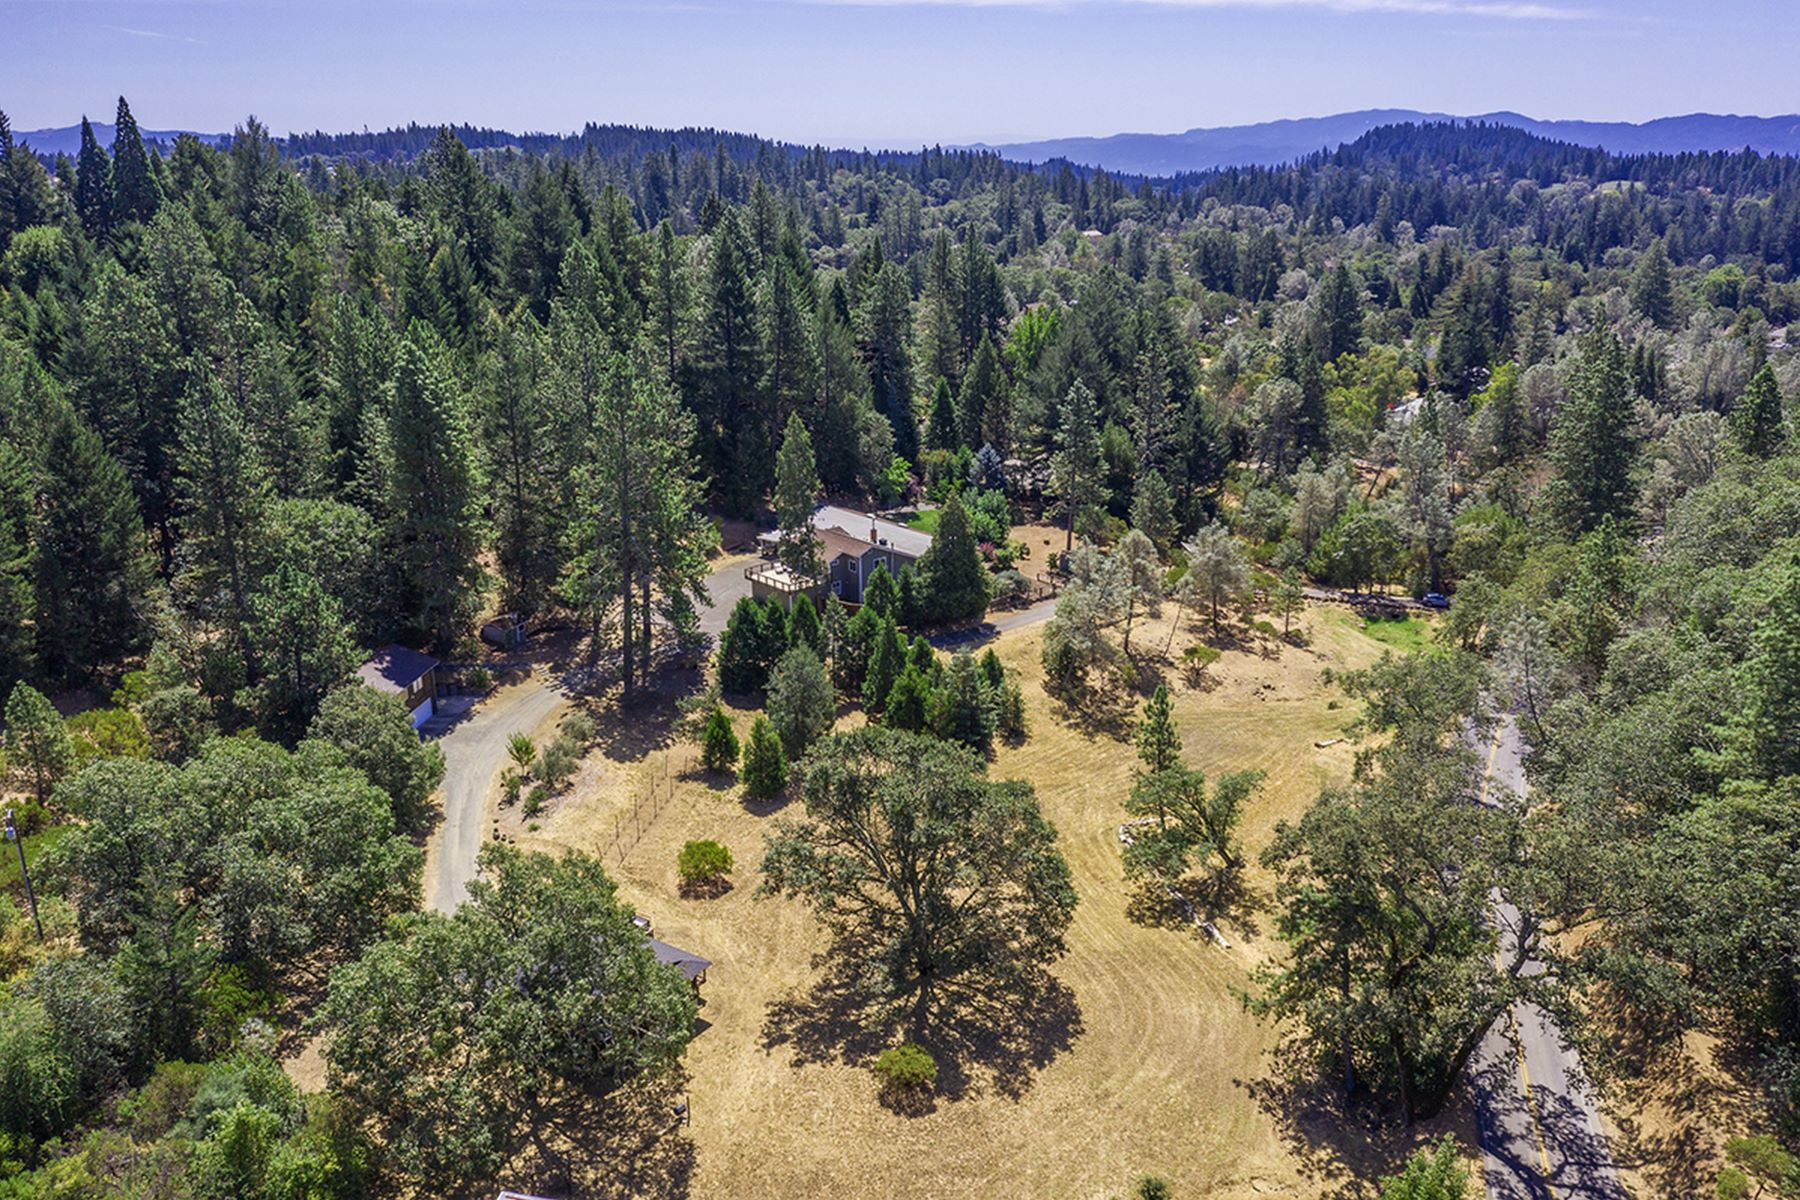 Single Family Homes for Active at Premium Howell Mountain Retreat 620 White Cottage Rd. N Angwin, California 94508 United States